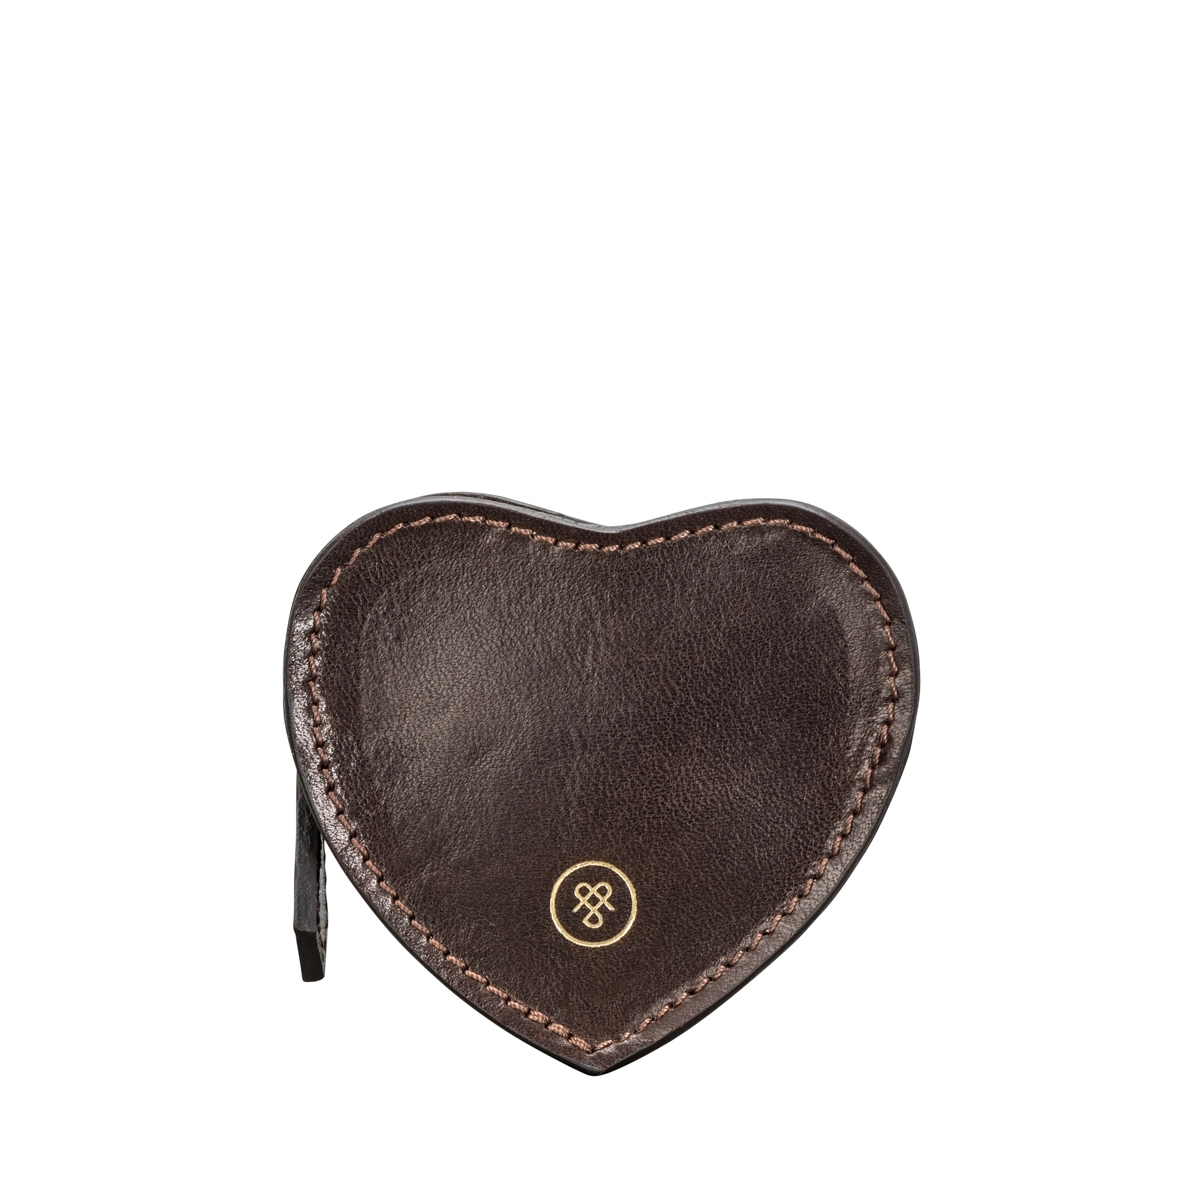 BROWN LEATHER HEART COIN PURSE